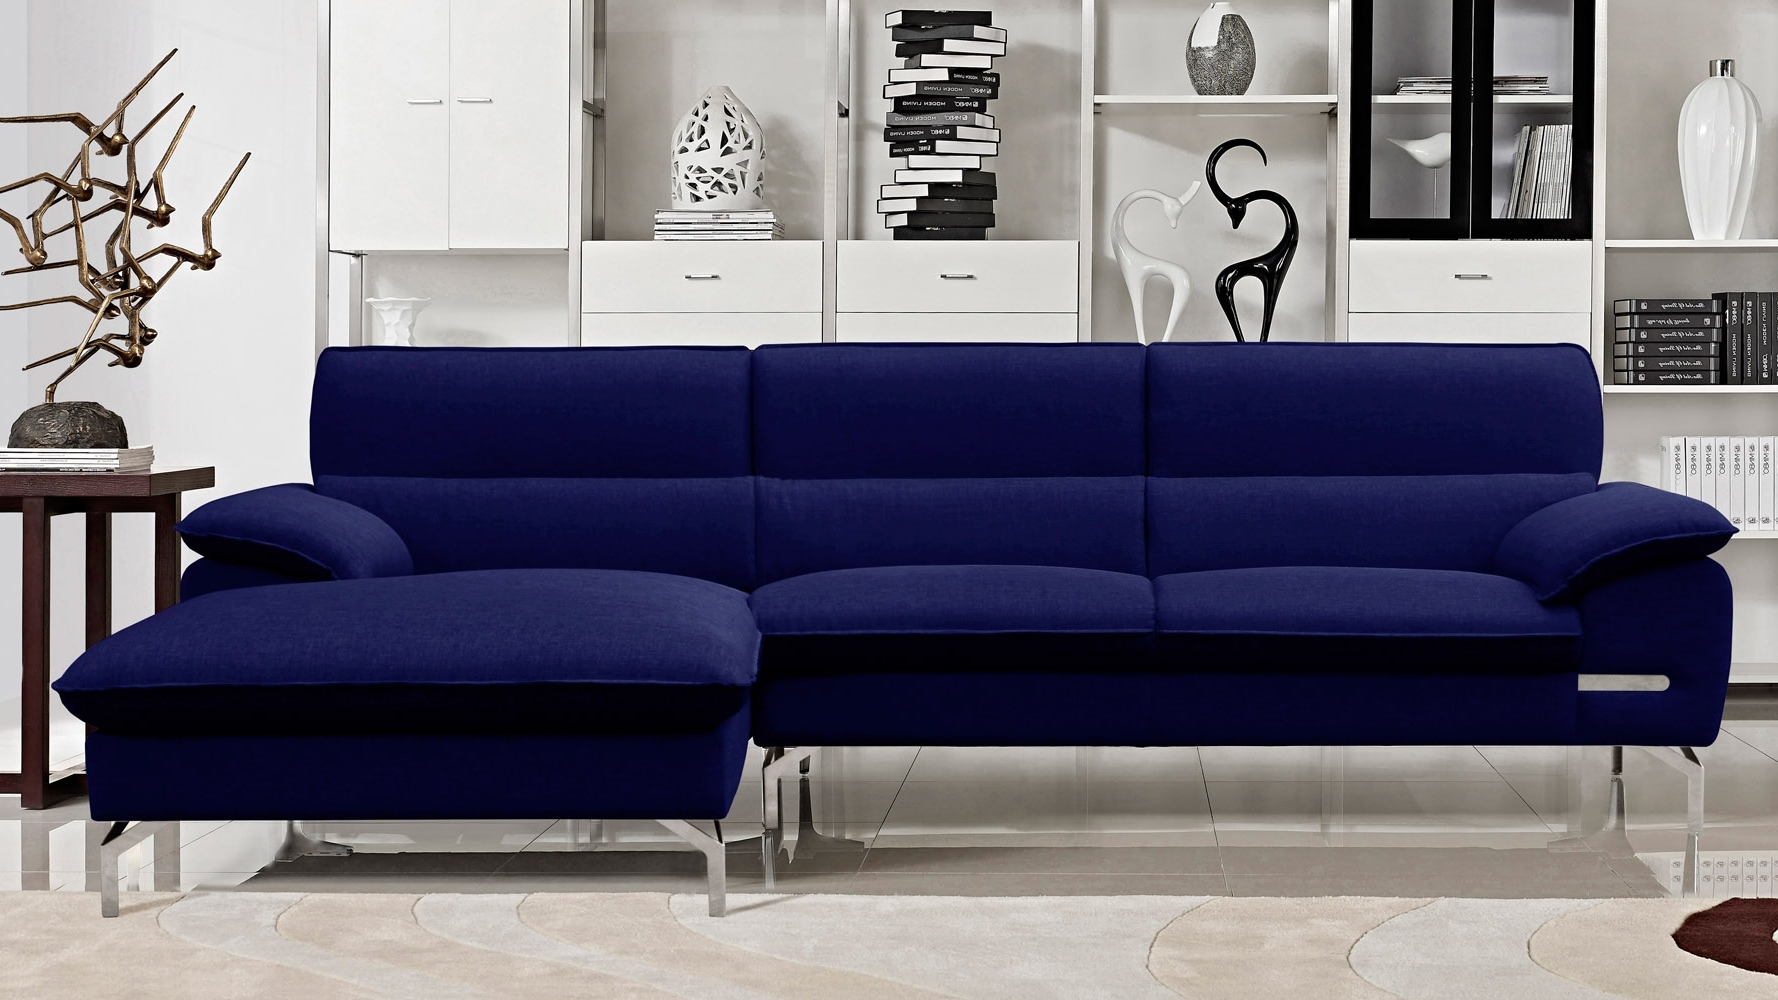 Blue Sectional Sofas With Chaise With Well Known Living Room Sofa Amazing Blue Sectional With Chaise For Modern (View 6 of 15)